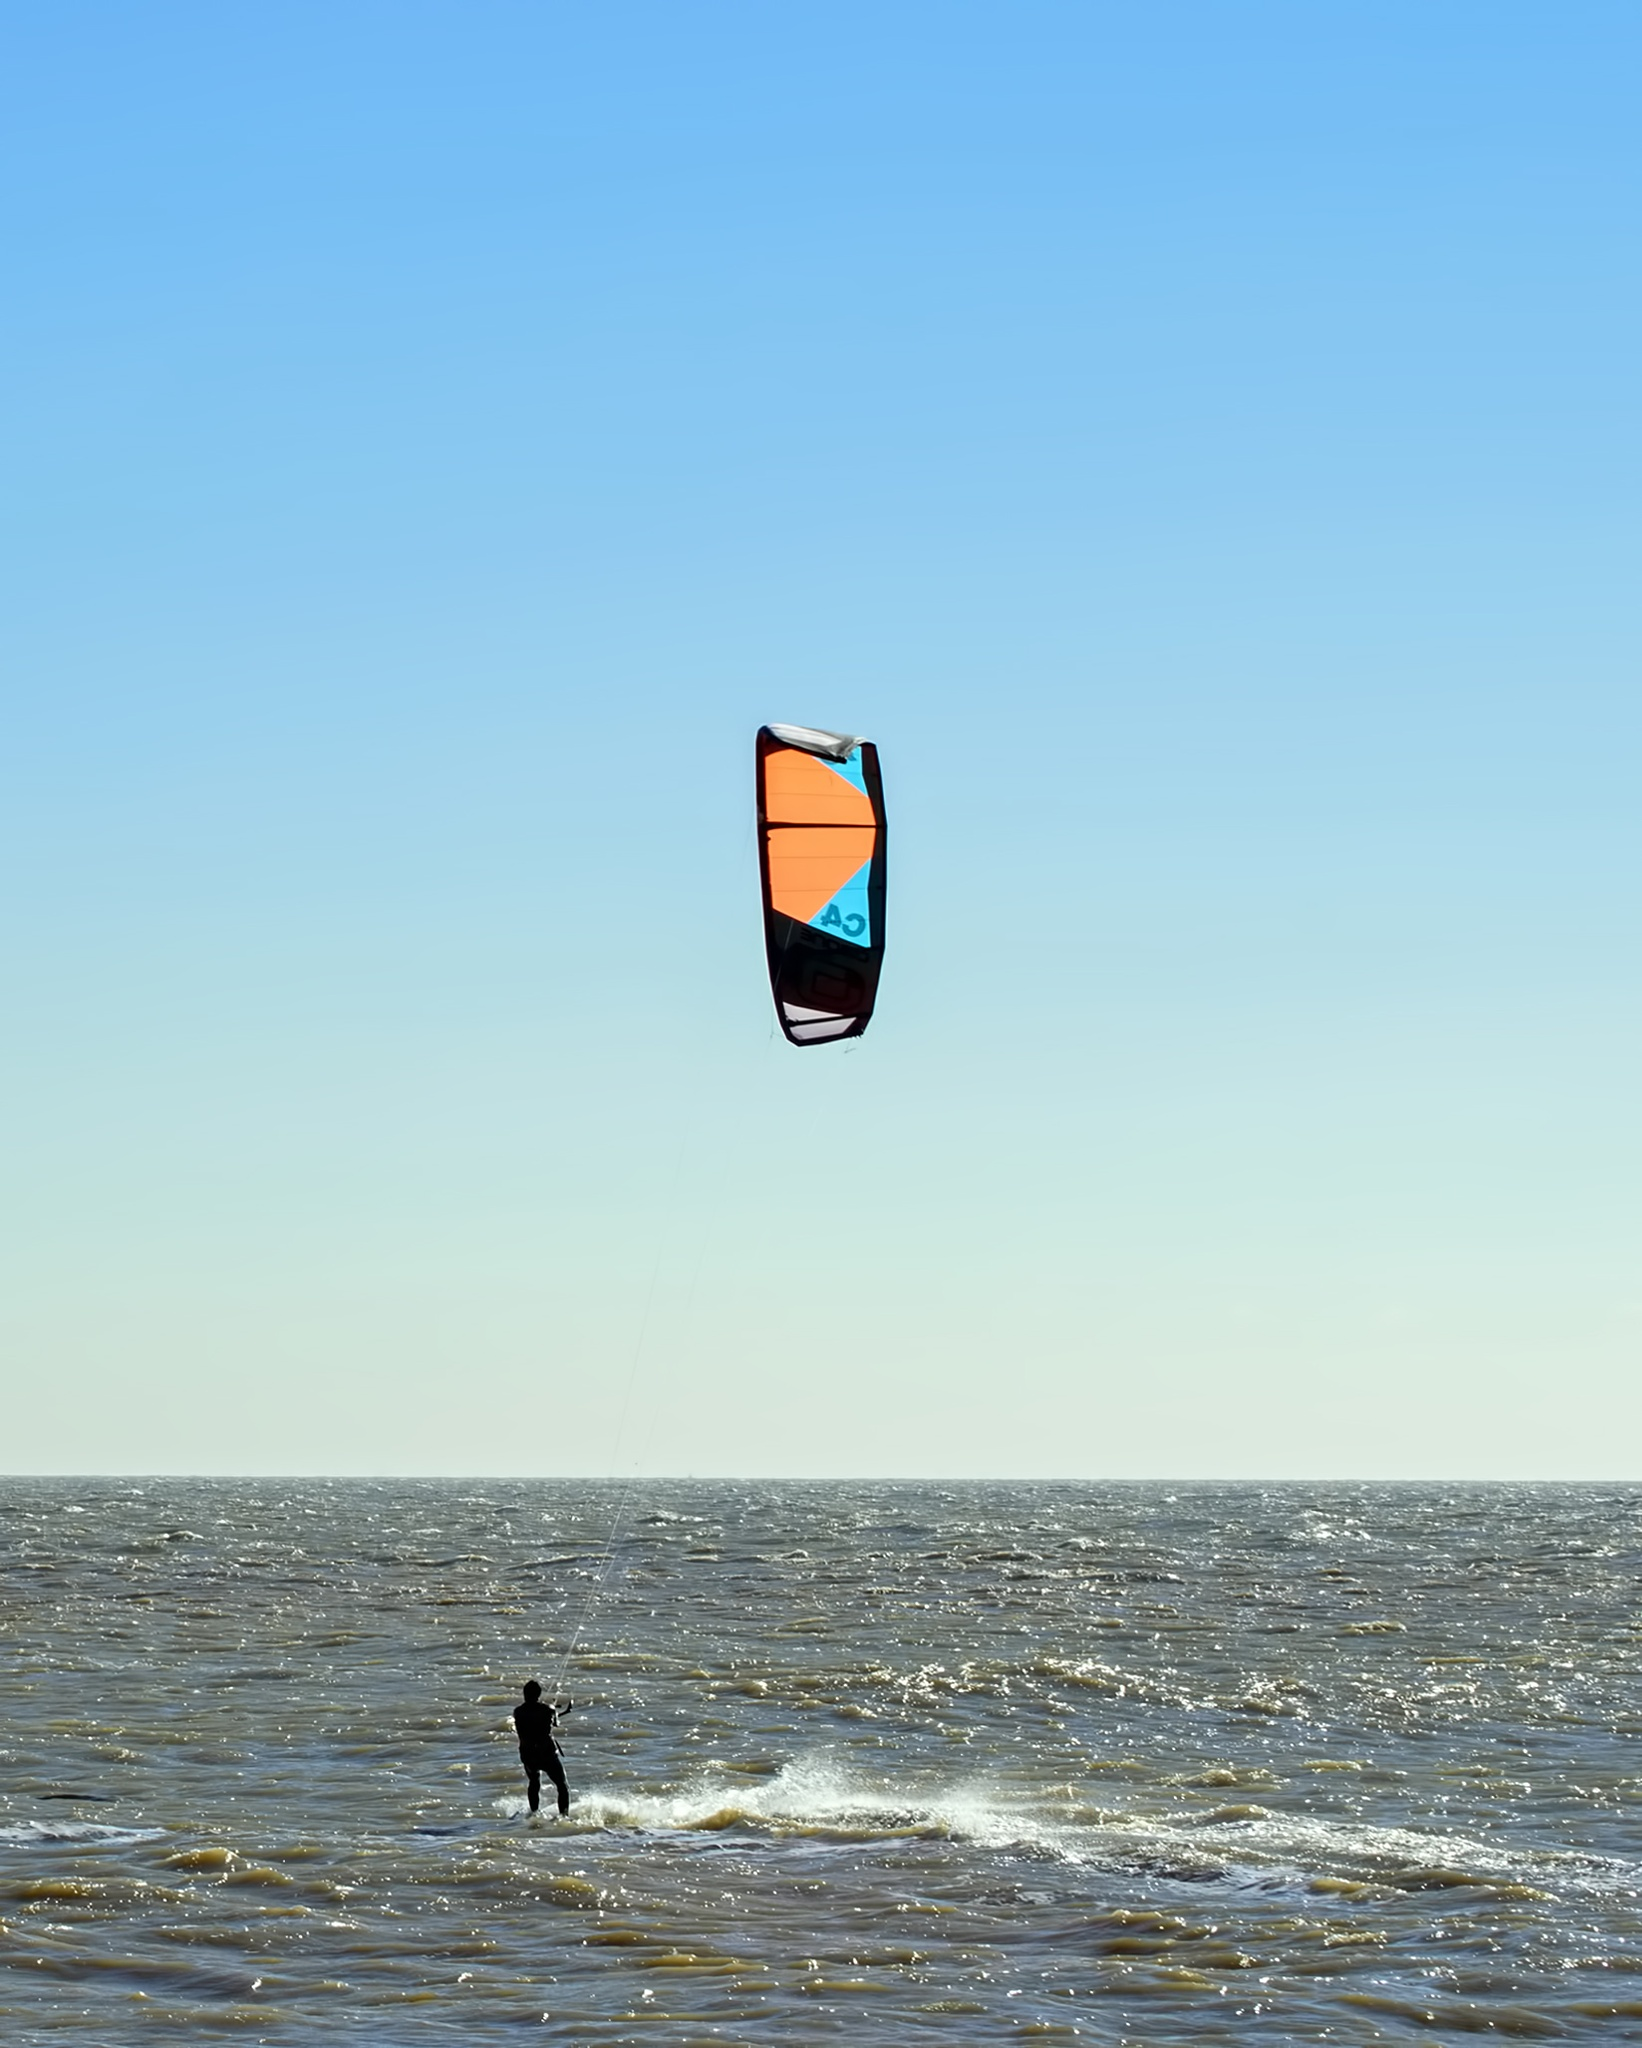 Kite Surfer by Darrin Mayo